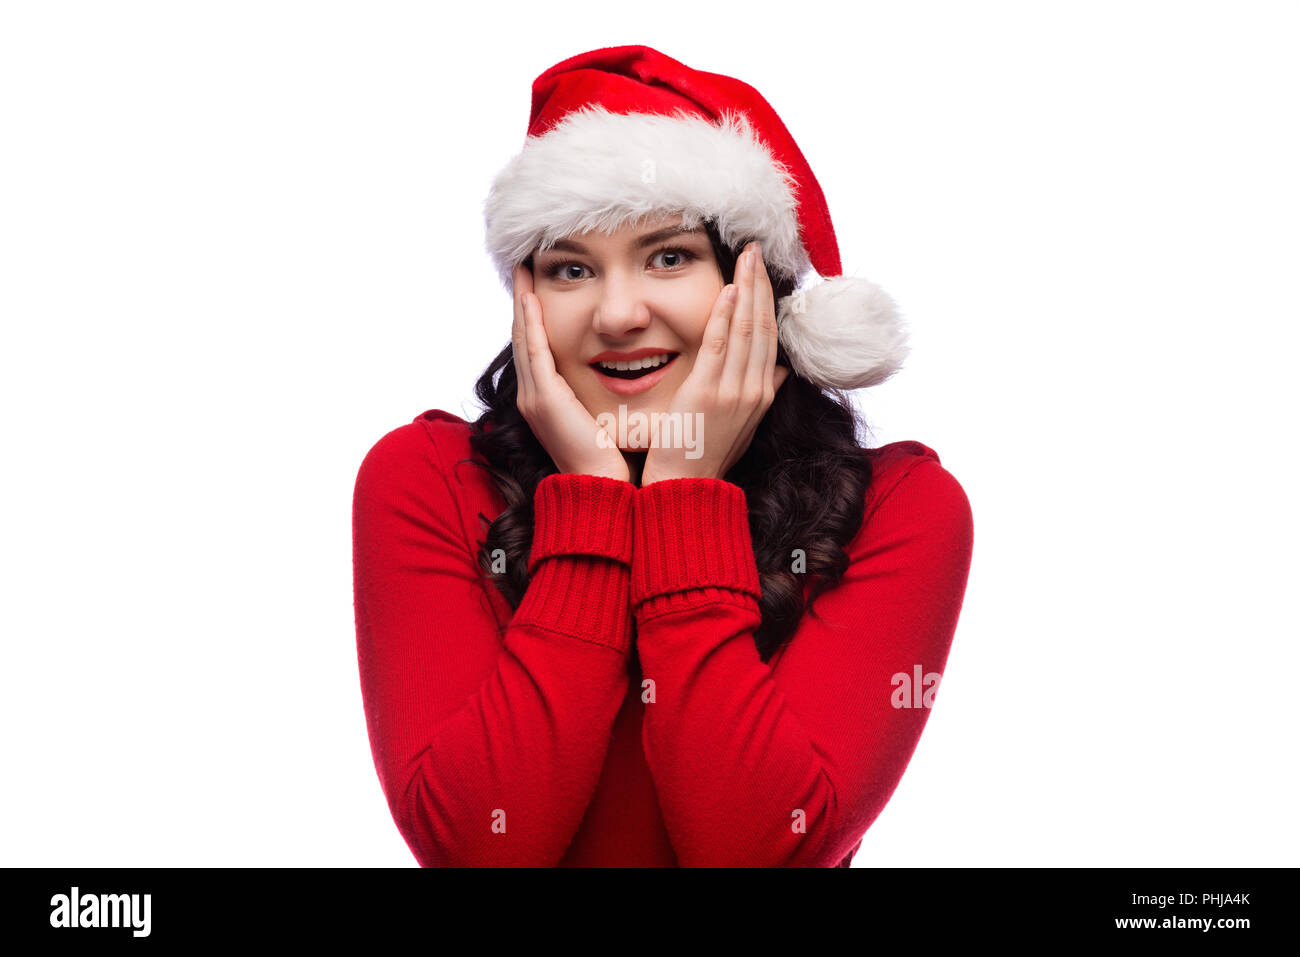 Portrait of joyful woman wearing santa hat in red sweater, smiling broadly and holding palms near cheeks, isolated over white background - Stock Image